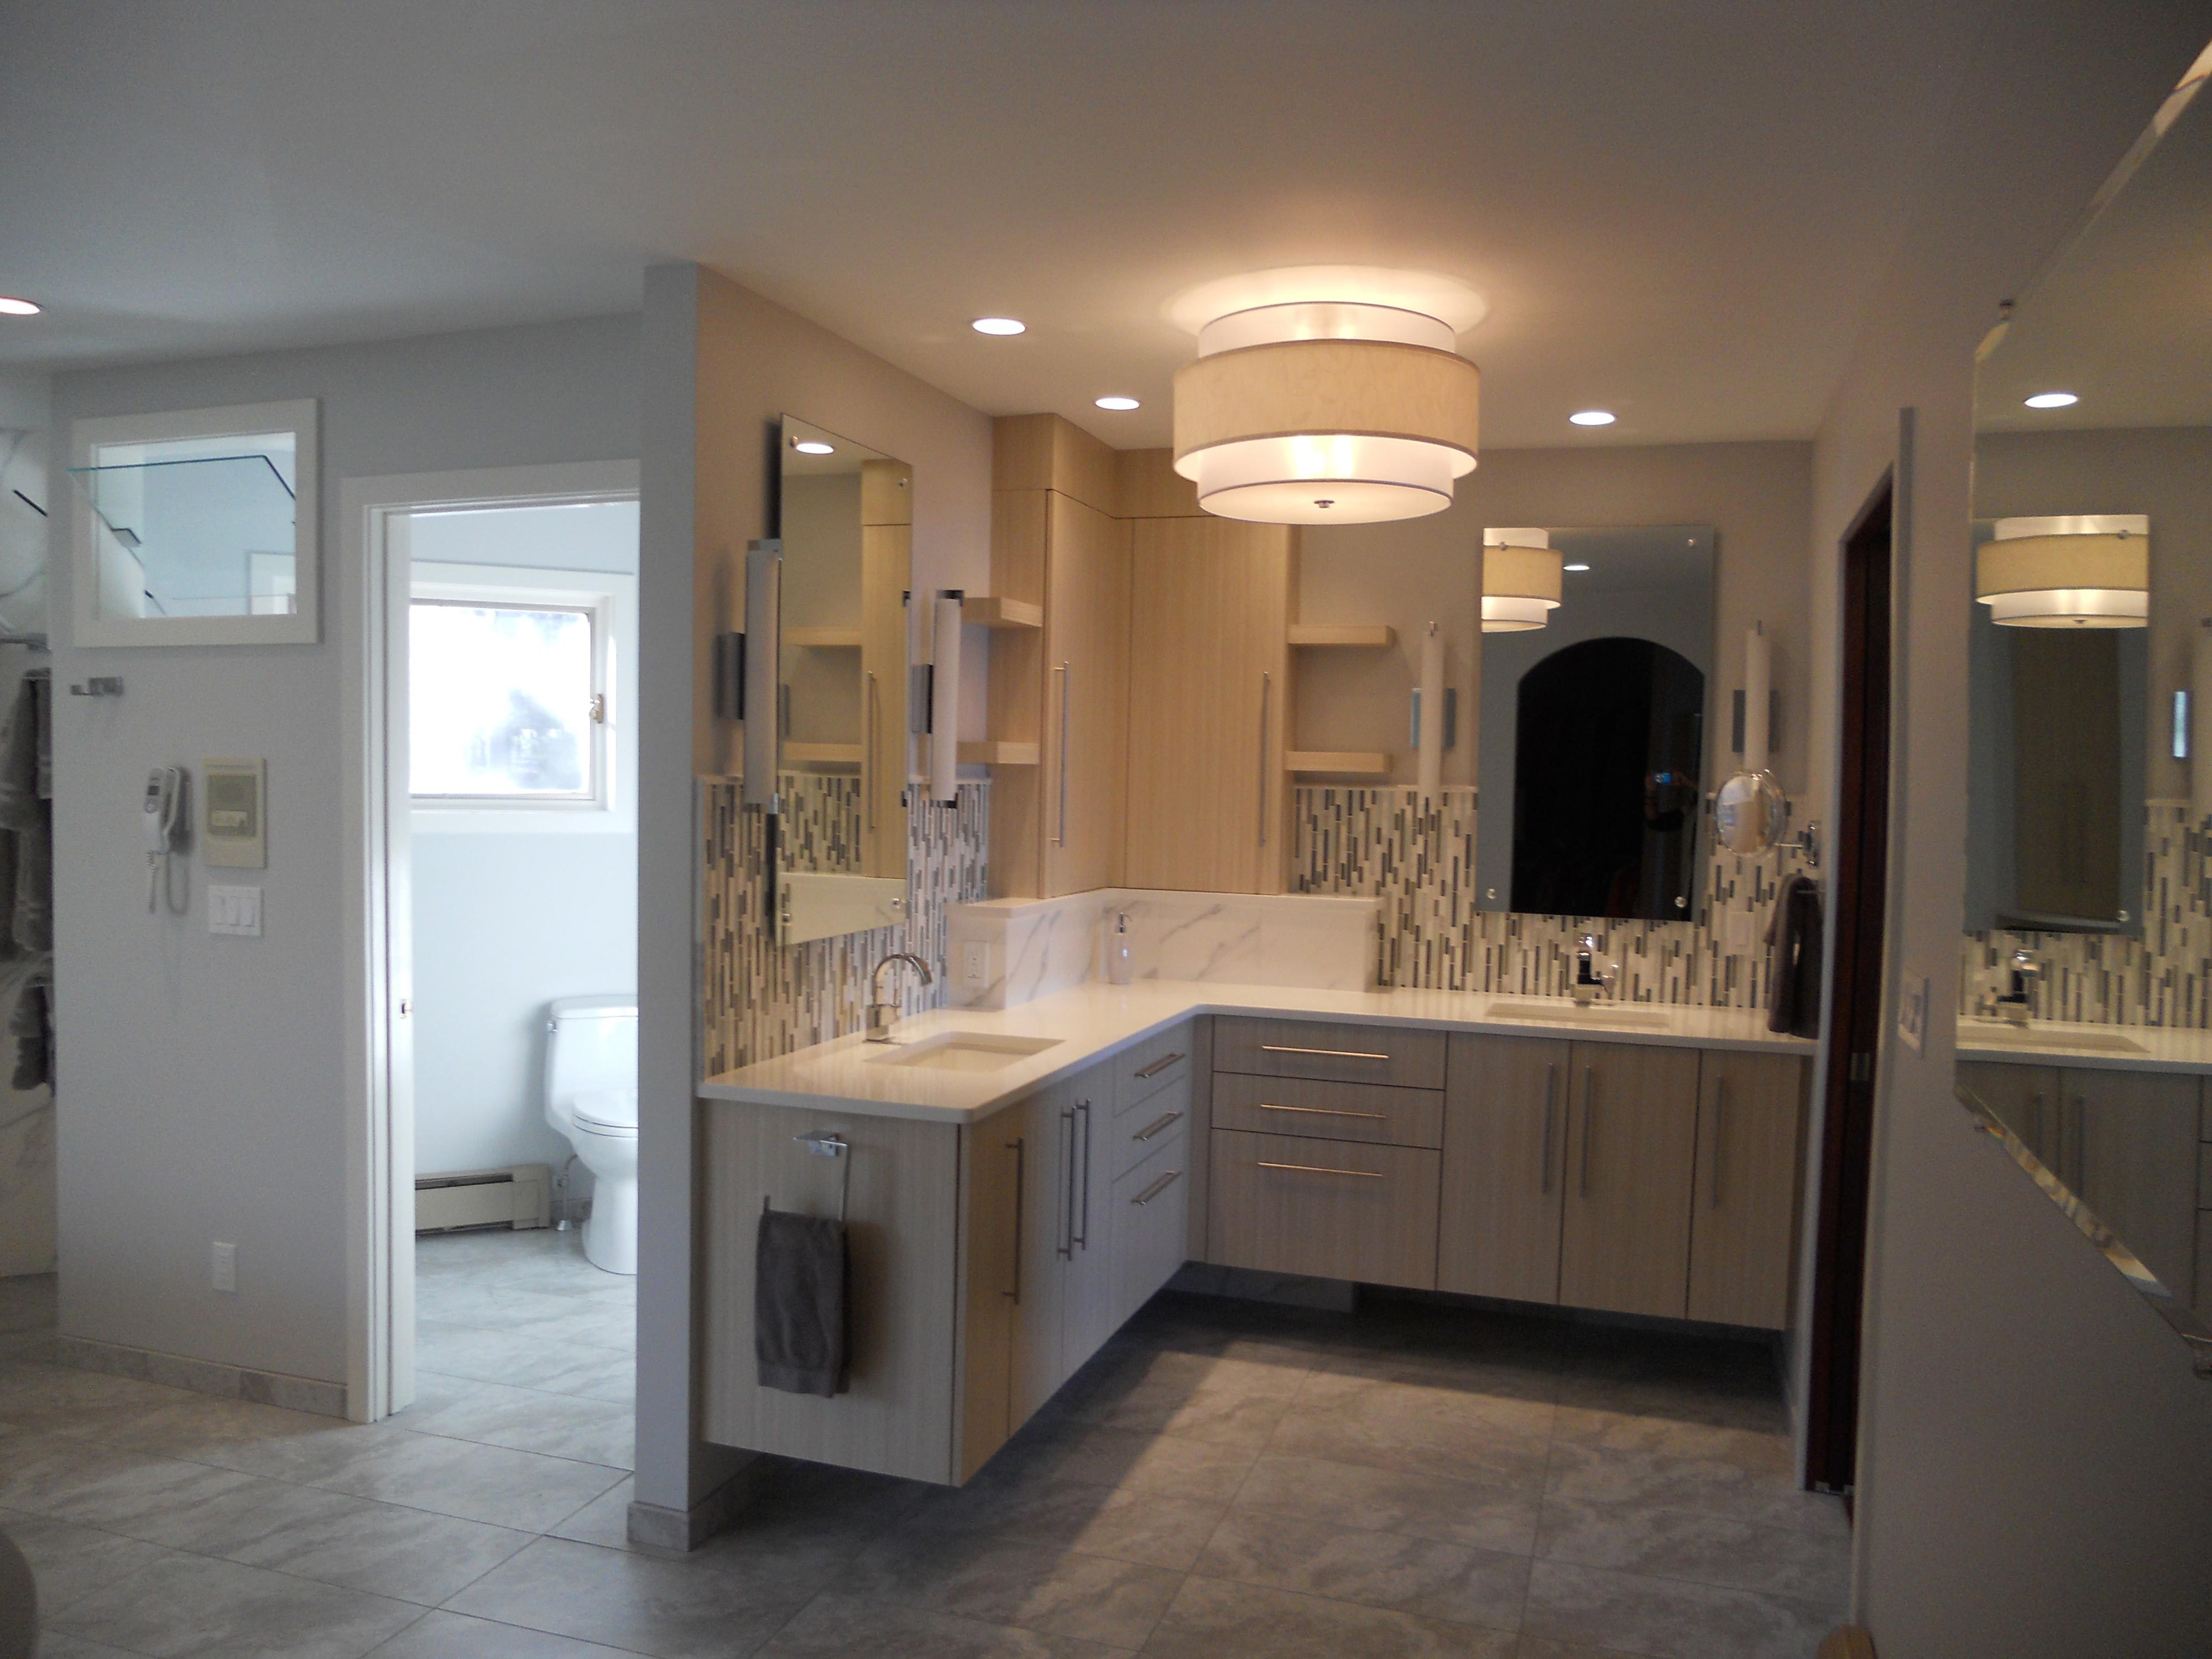 Bathroom remodeling rochester ny bryce doyle for Bathroom remodel rochester ny